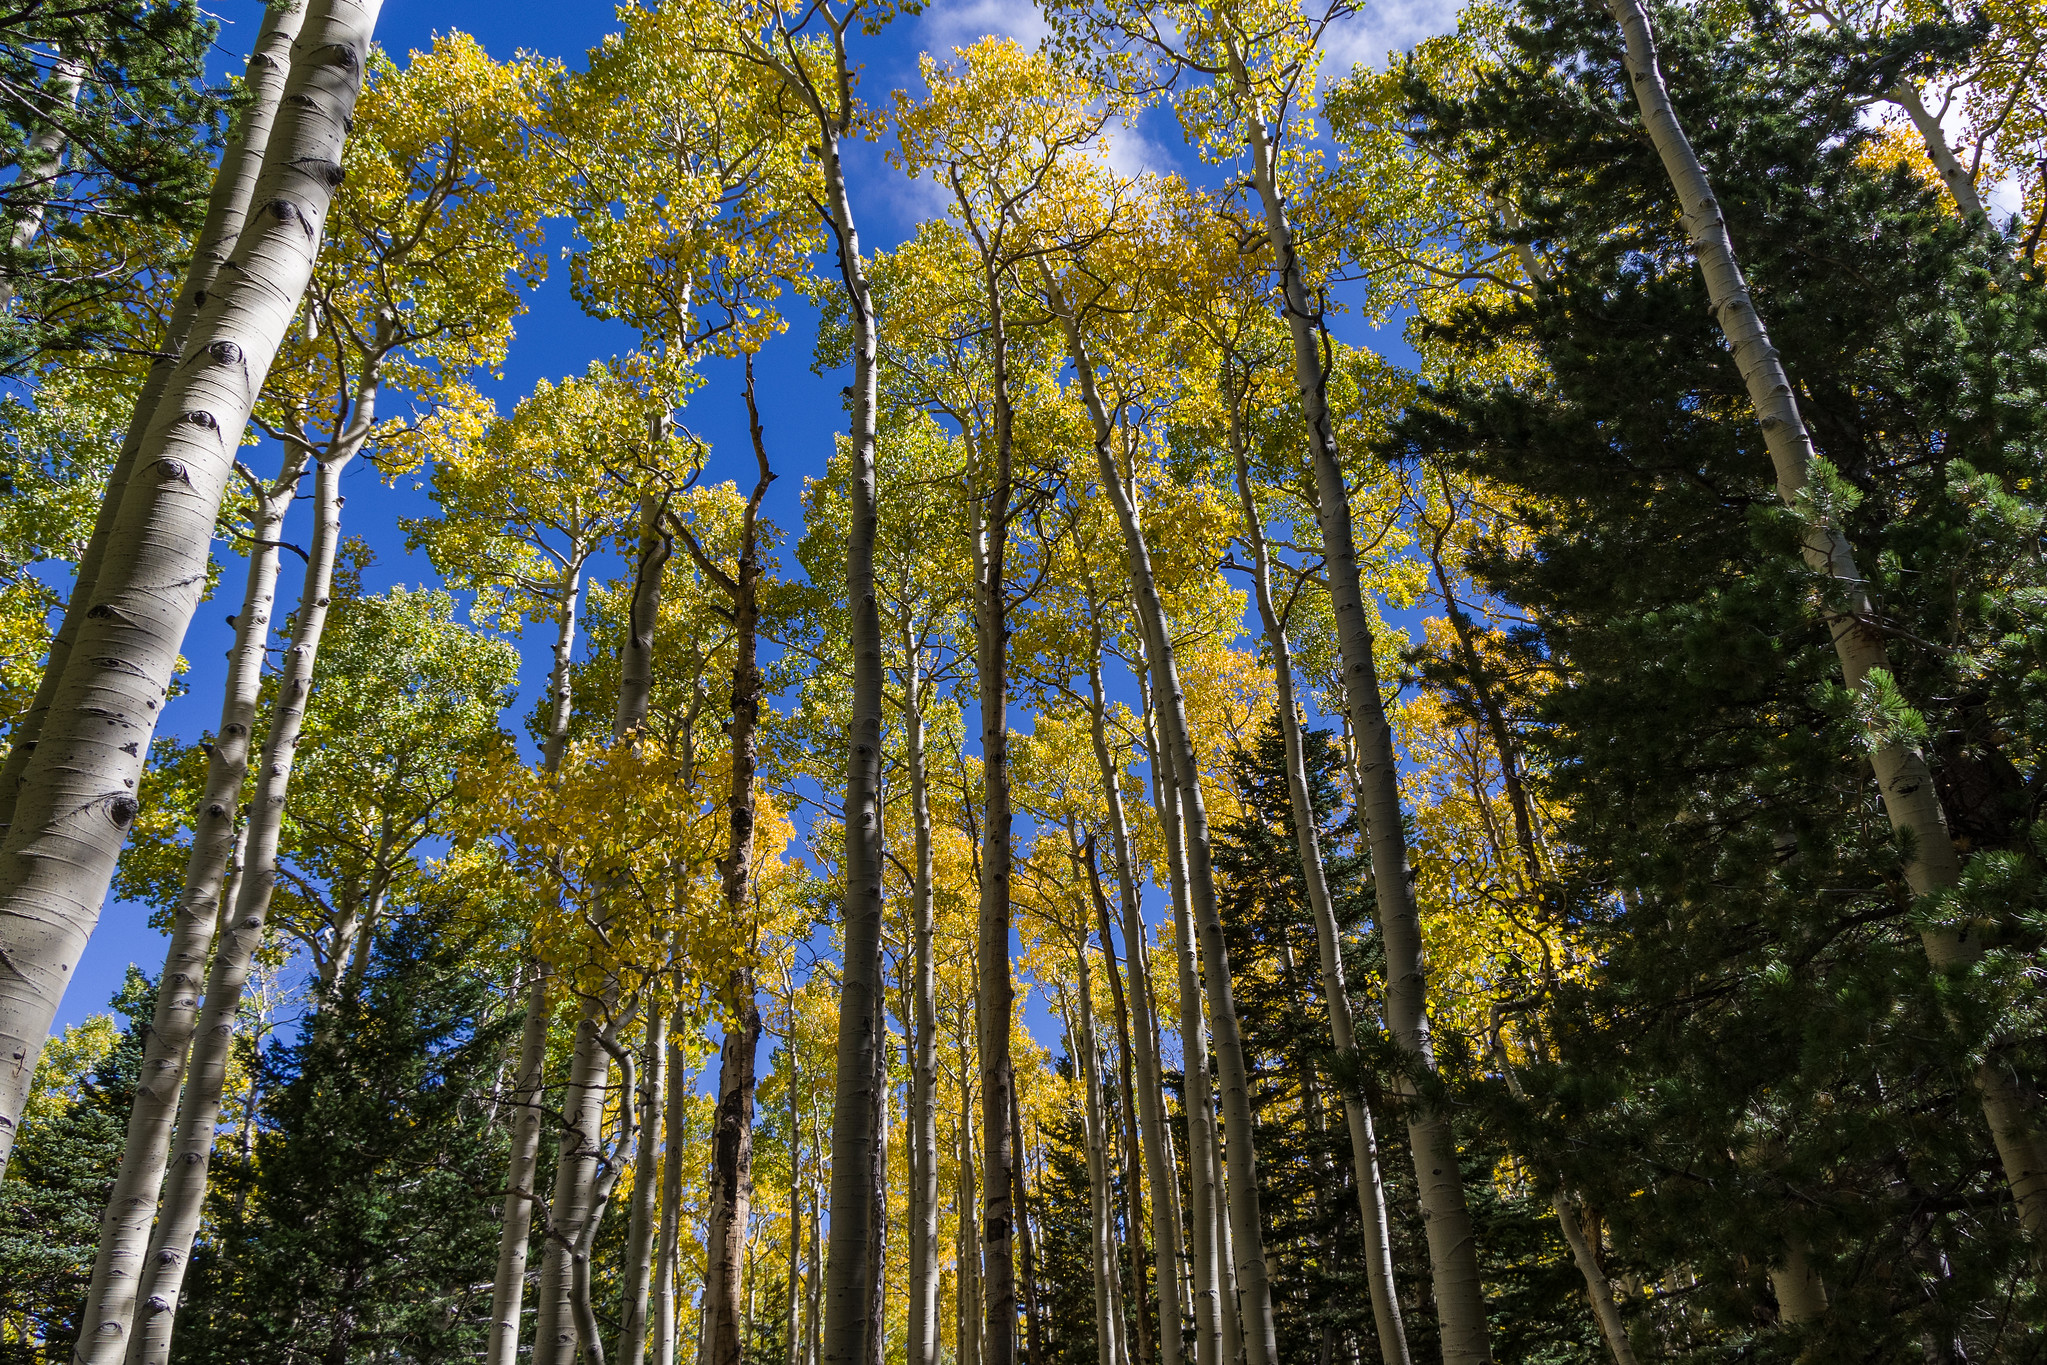 Fall color September 25, 2016 in the upper end of Bear Jaw Canyon, Bear Jaw Trail Coconino National Forest